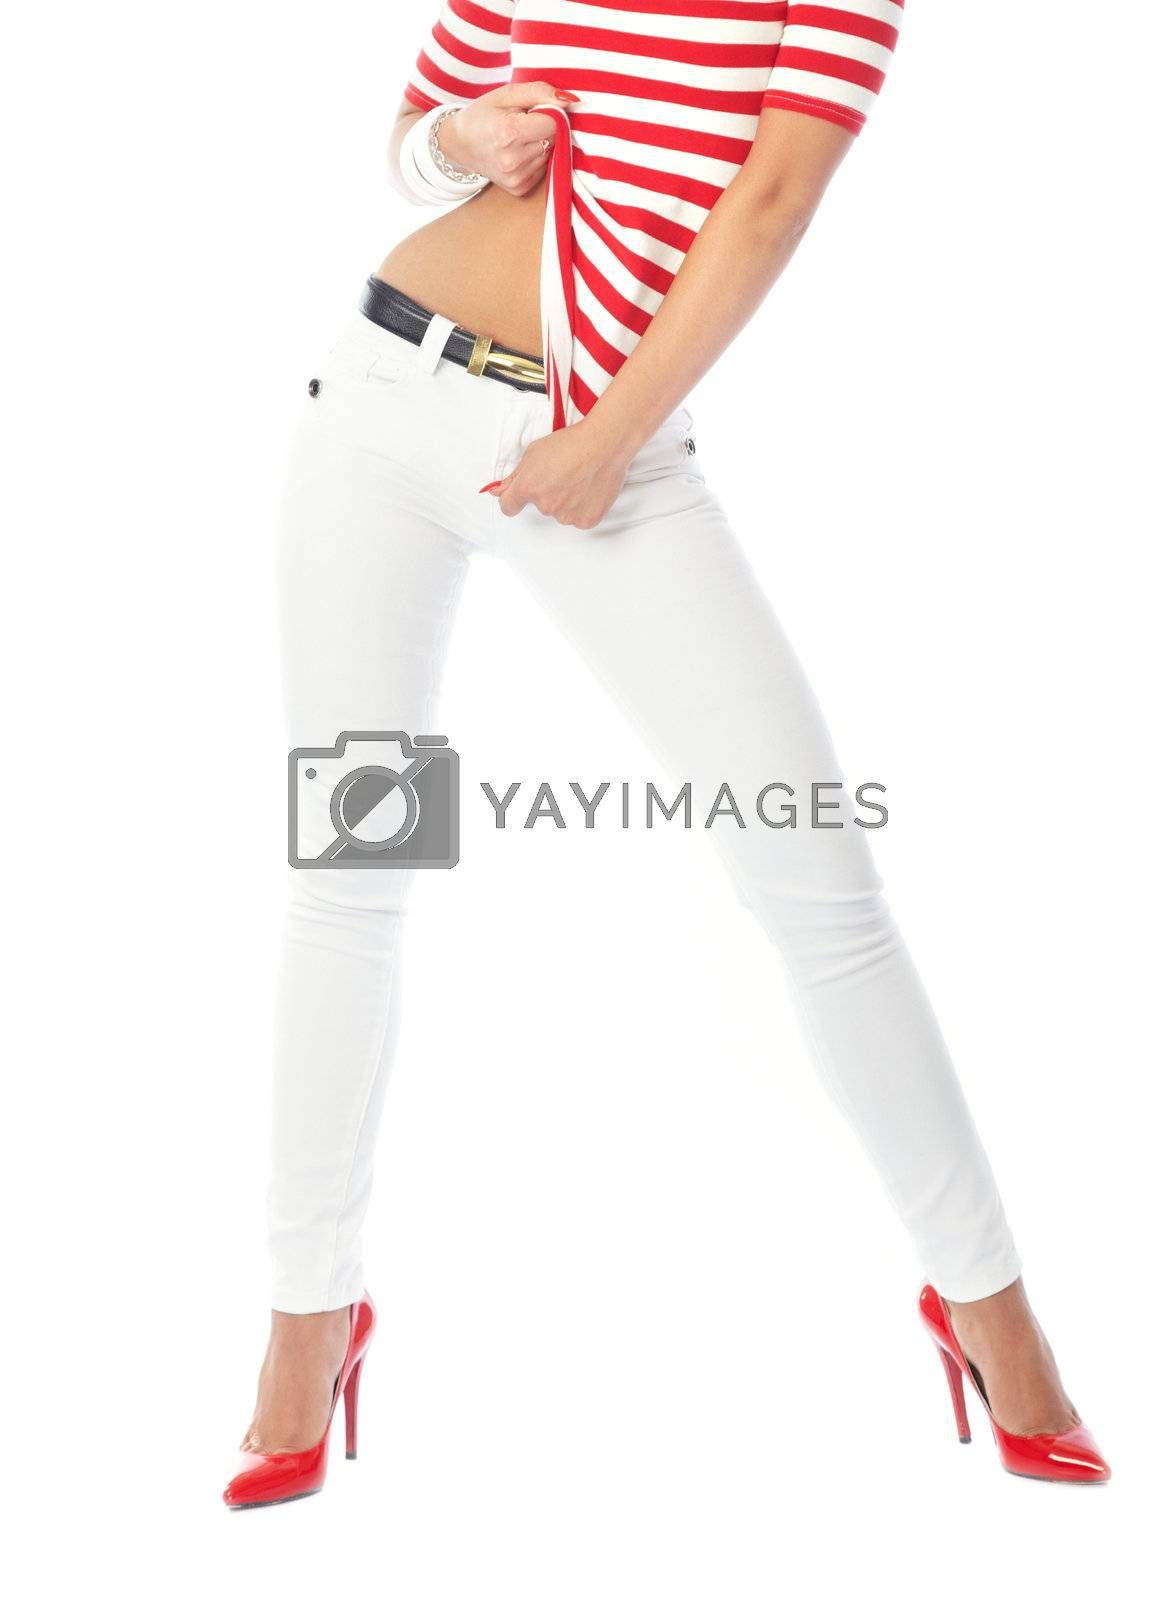 Part of the stylish woman wearing modern clothes on a white background